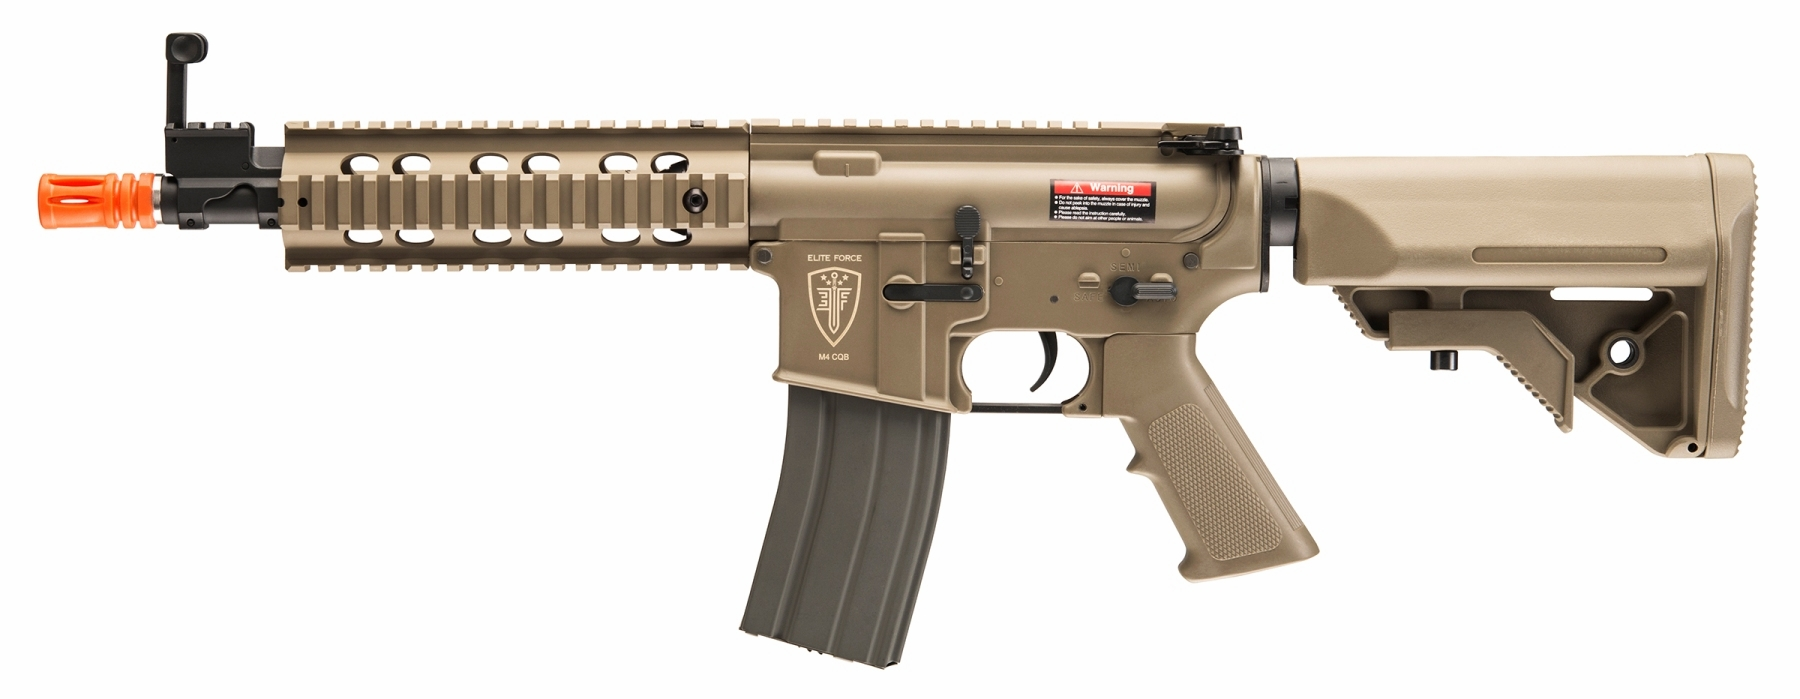 Elite Force M4 CQB